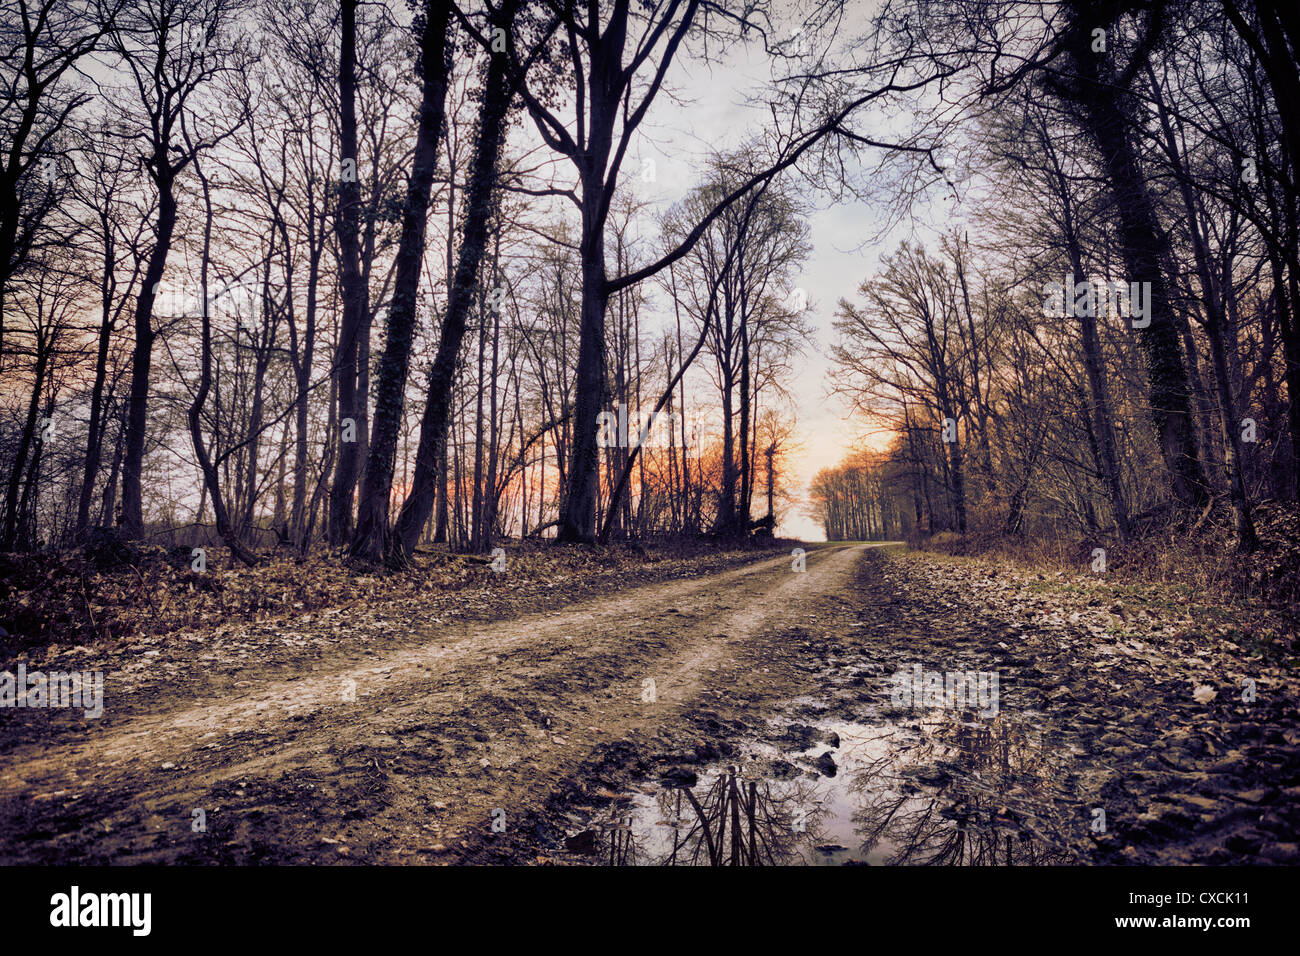 County road in france - Stock Image